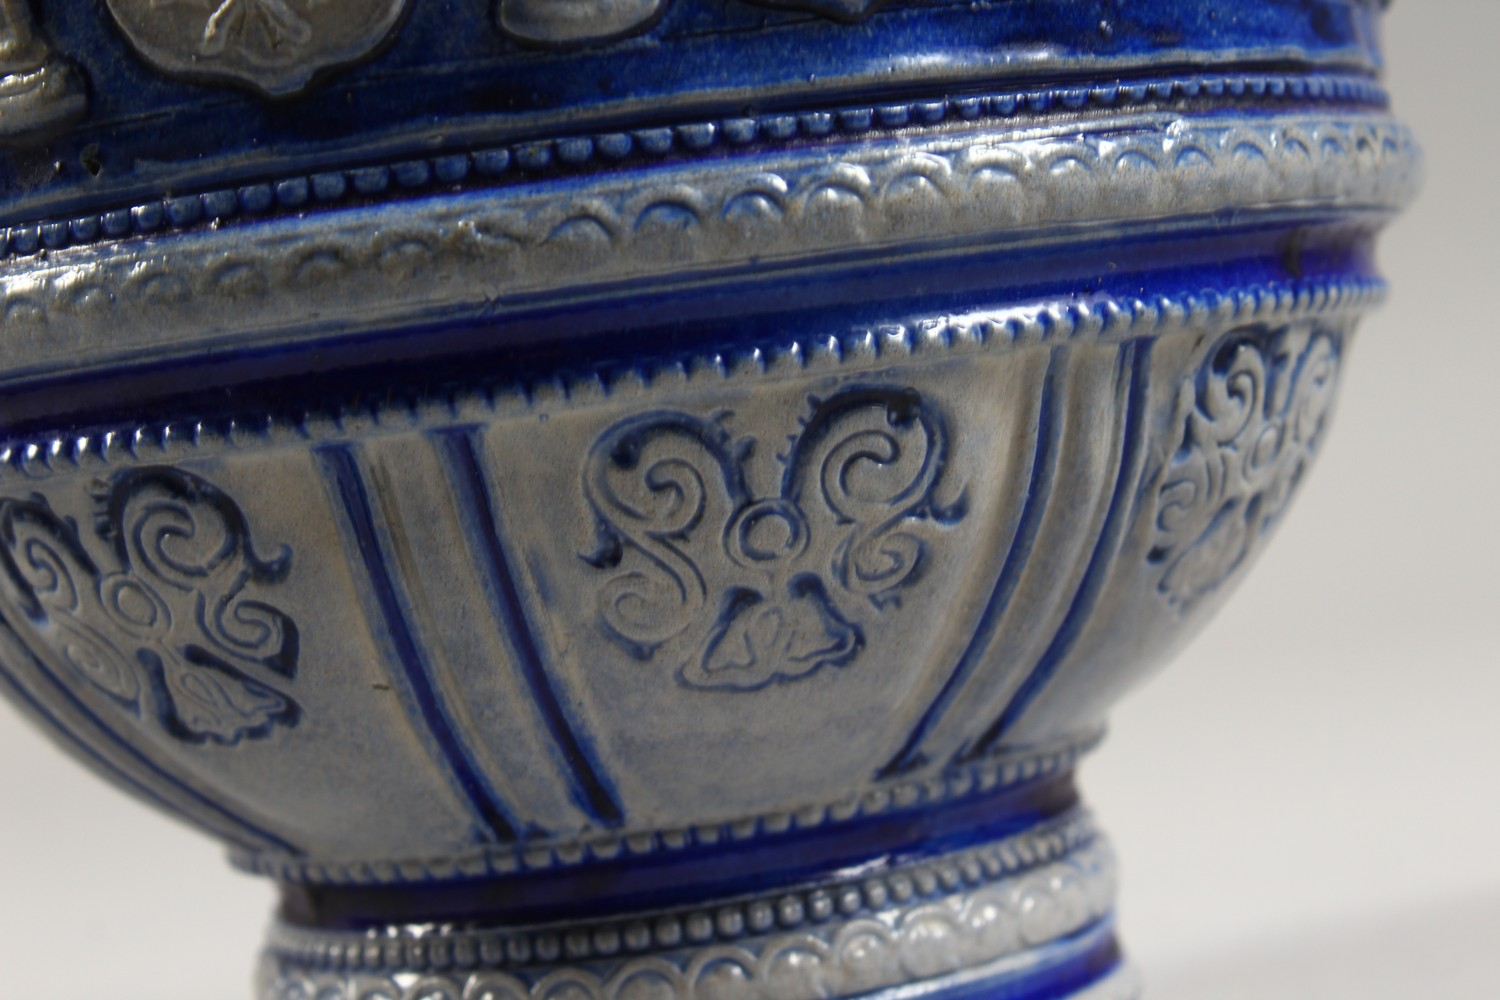 Lot 1151 - A CONTINENTAL STONEWARE JUG, with blue glazed, moulded decoration and pewter lid. 13ins high.